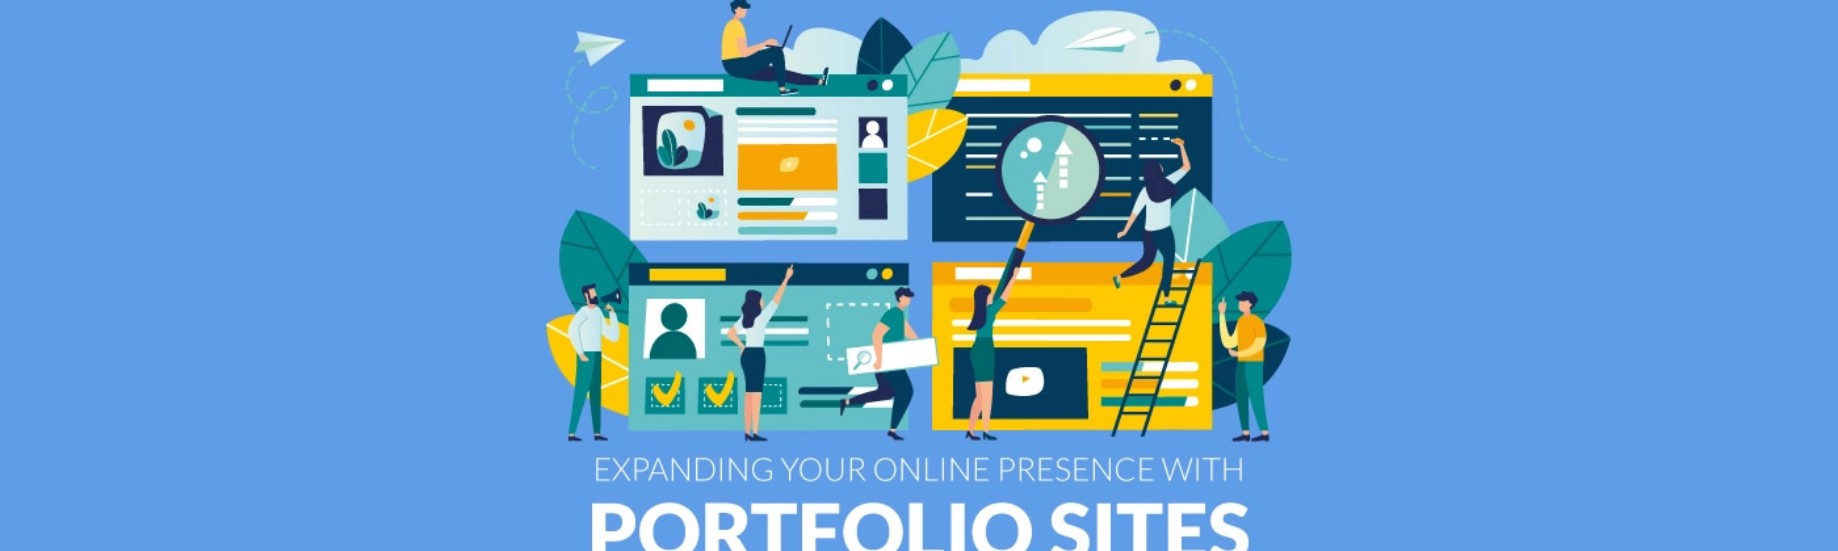 Expanding Your Online Presence with Portfolio Sites